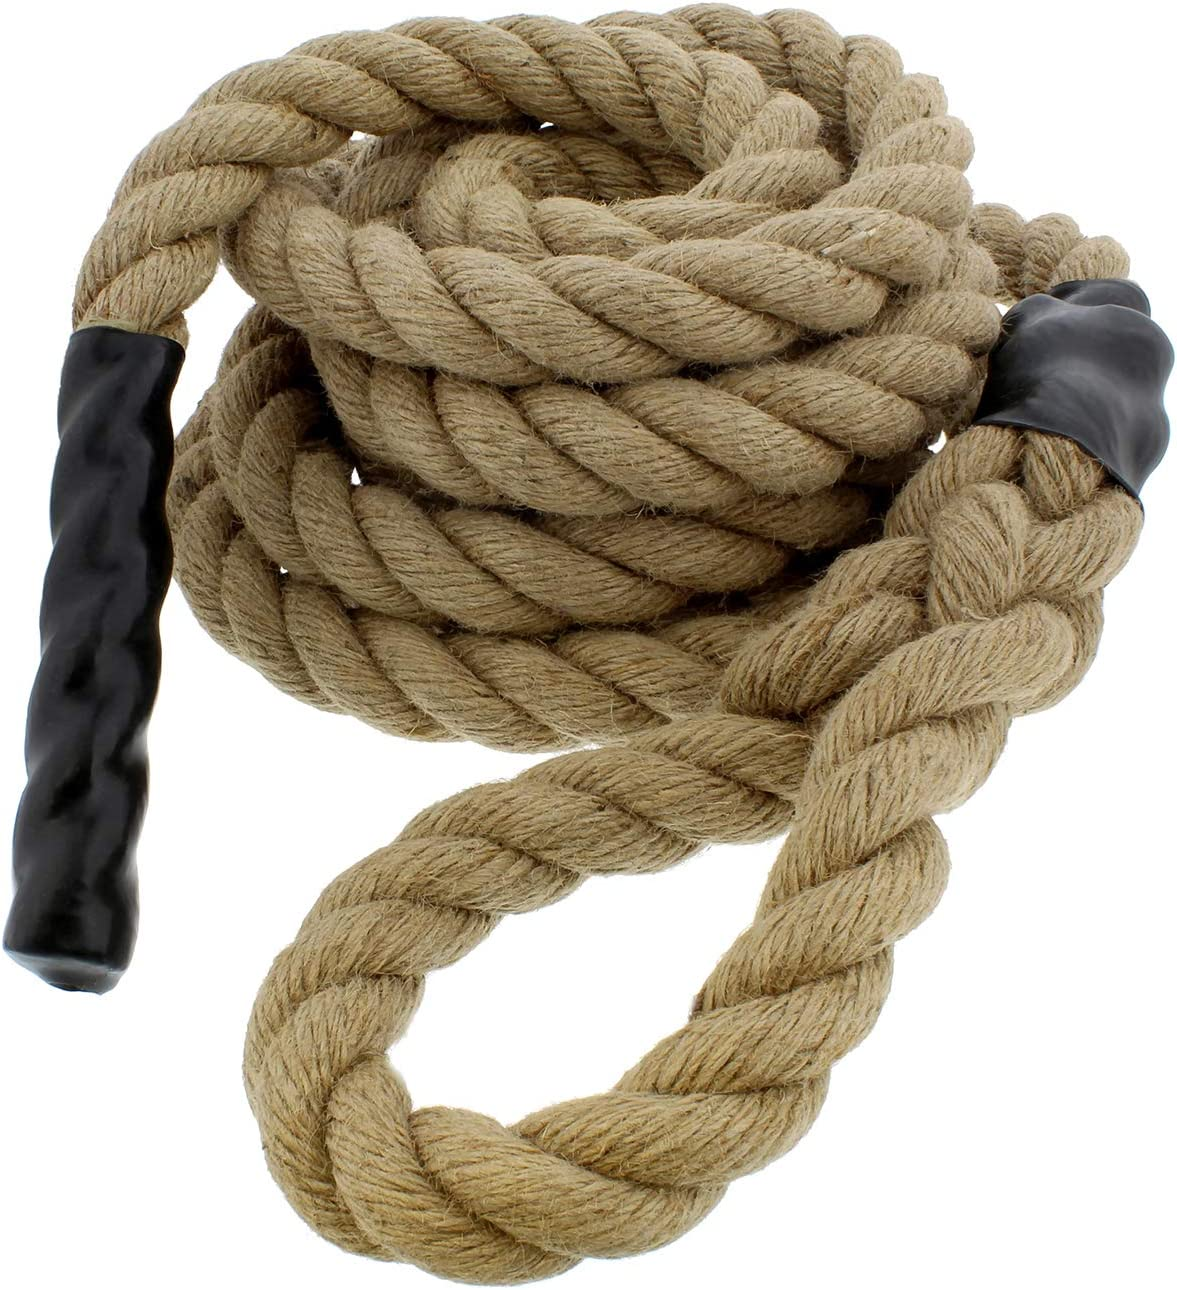 Get Out! Jute Exercise Rope, Fitness Rope for Indoor Climbing Rope Gym Rope Climbing – 1.5in Ropes for Climbing  1.5 In x 30 Ft